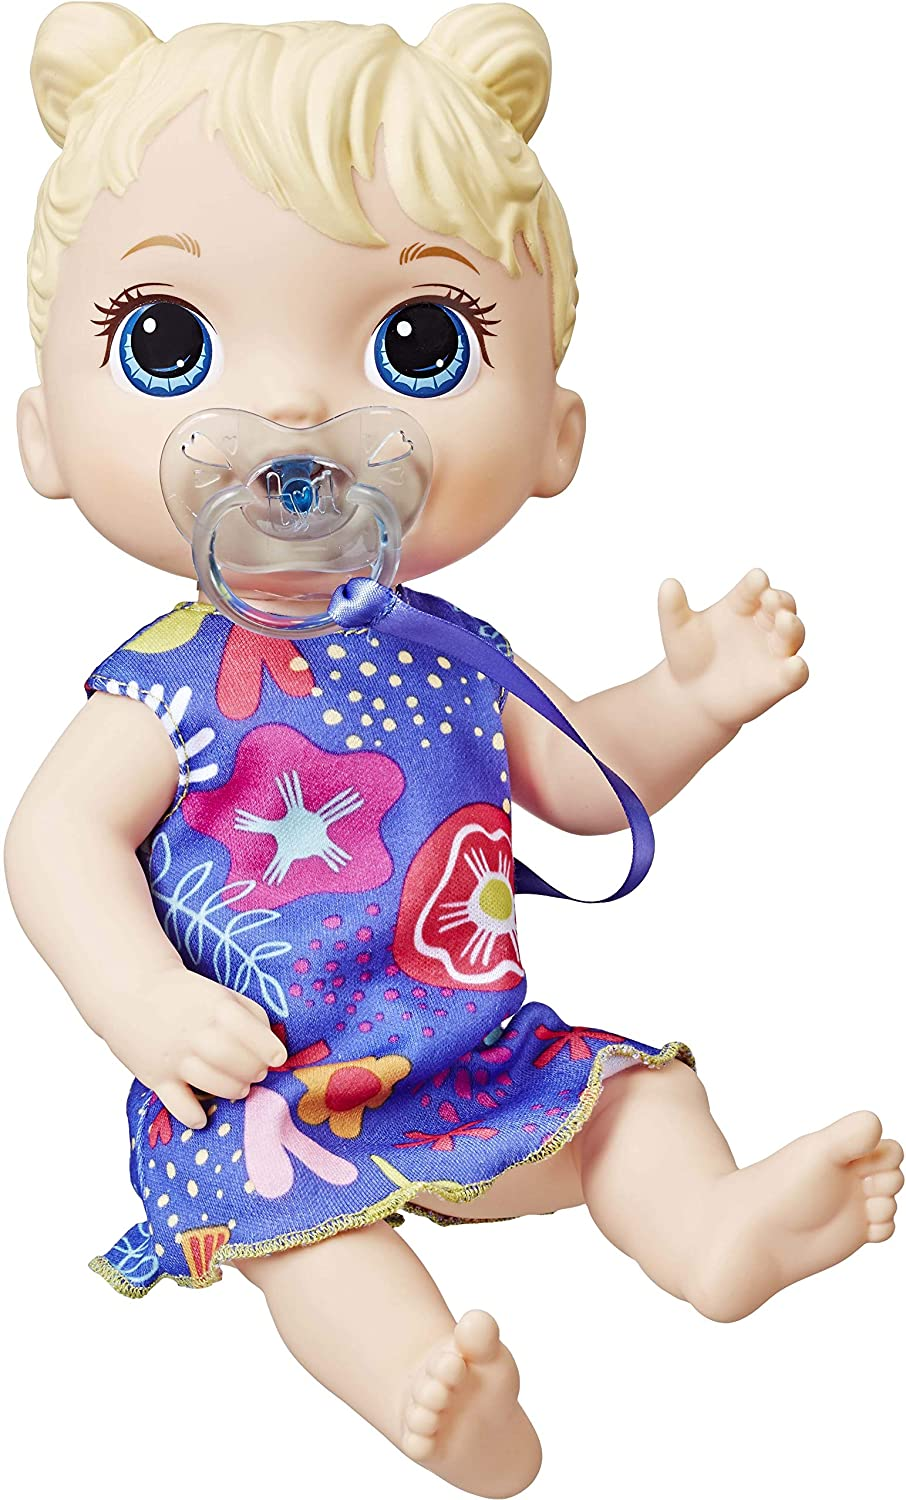 Baby Alive Baby Lil Sounds: Interactive Baby Doll for Girls & Boys Ages 3 & Up, Makes 10 Sound Effects, Including Giggles, Cries, Baby Doll with Pacifier